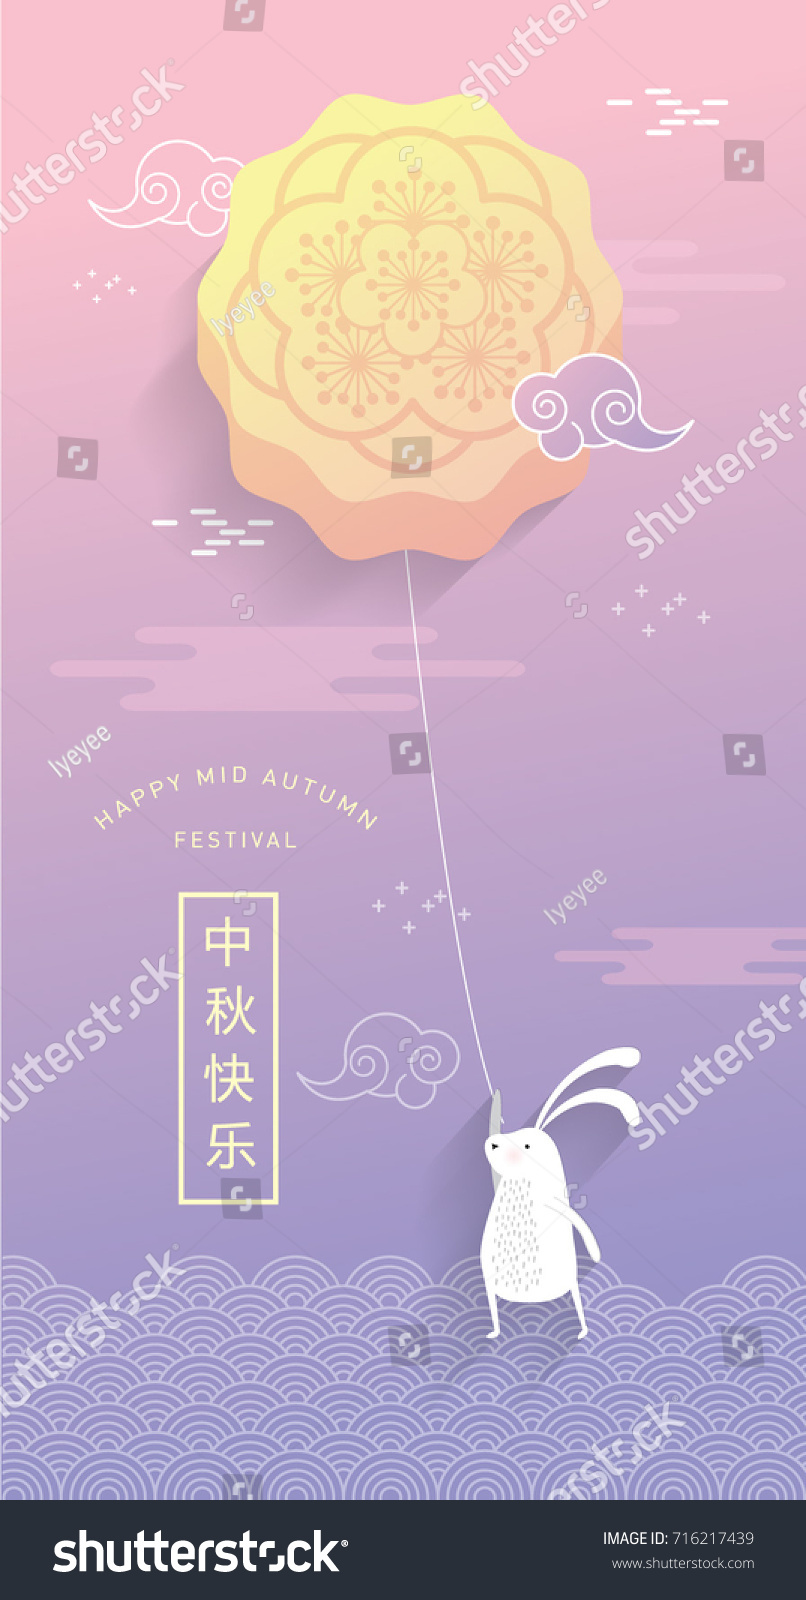 Mid autumn festival greetings template vectorillustration stock mid autumn festival greetings template vectorillustration with chinese characters that mean happy mid autumn m4hsunfo